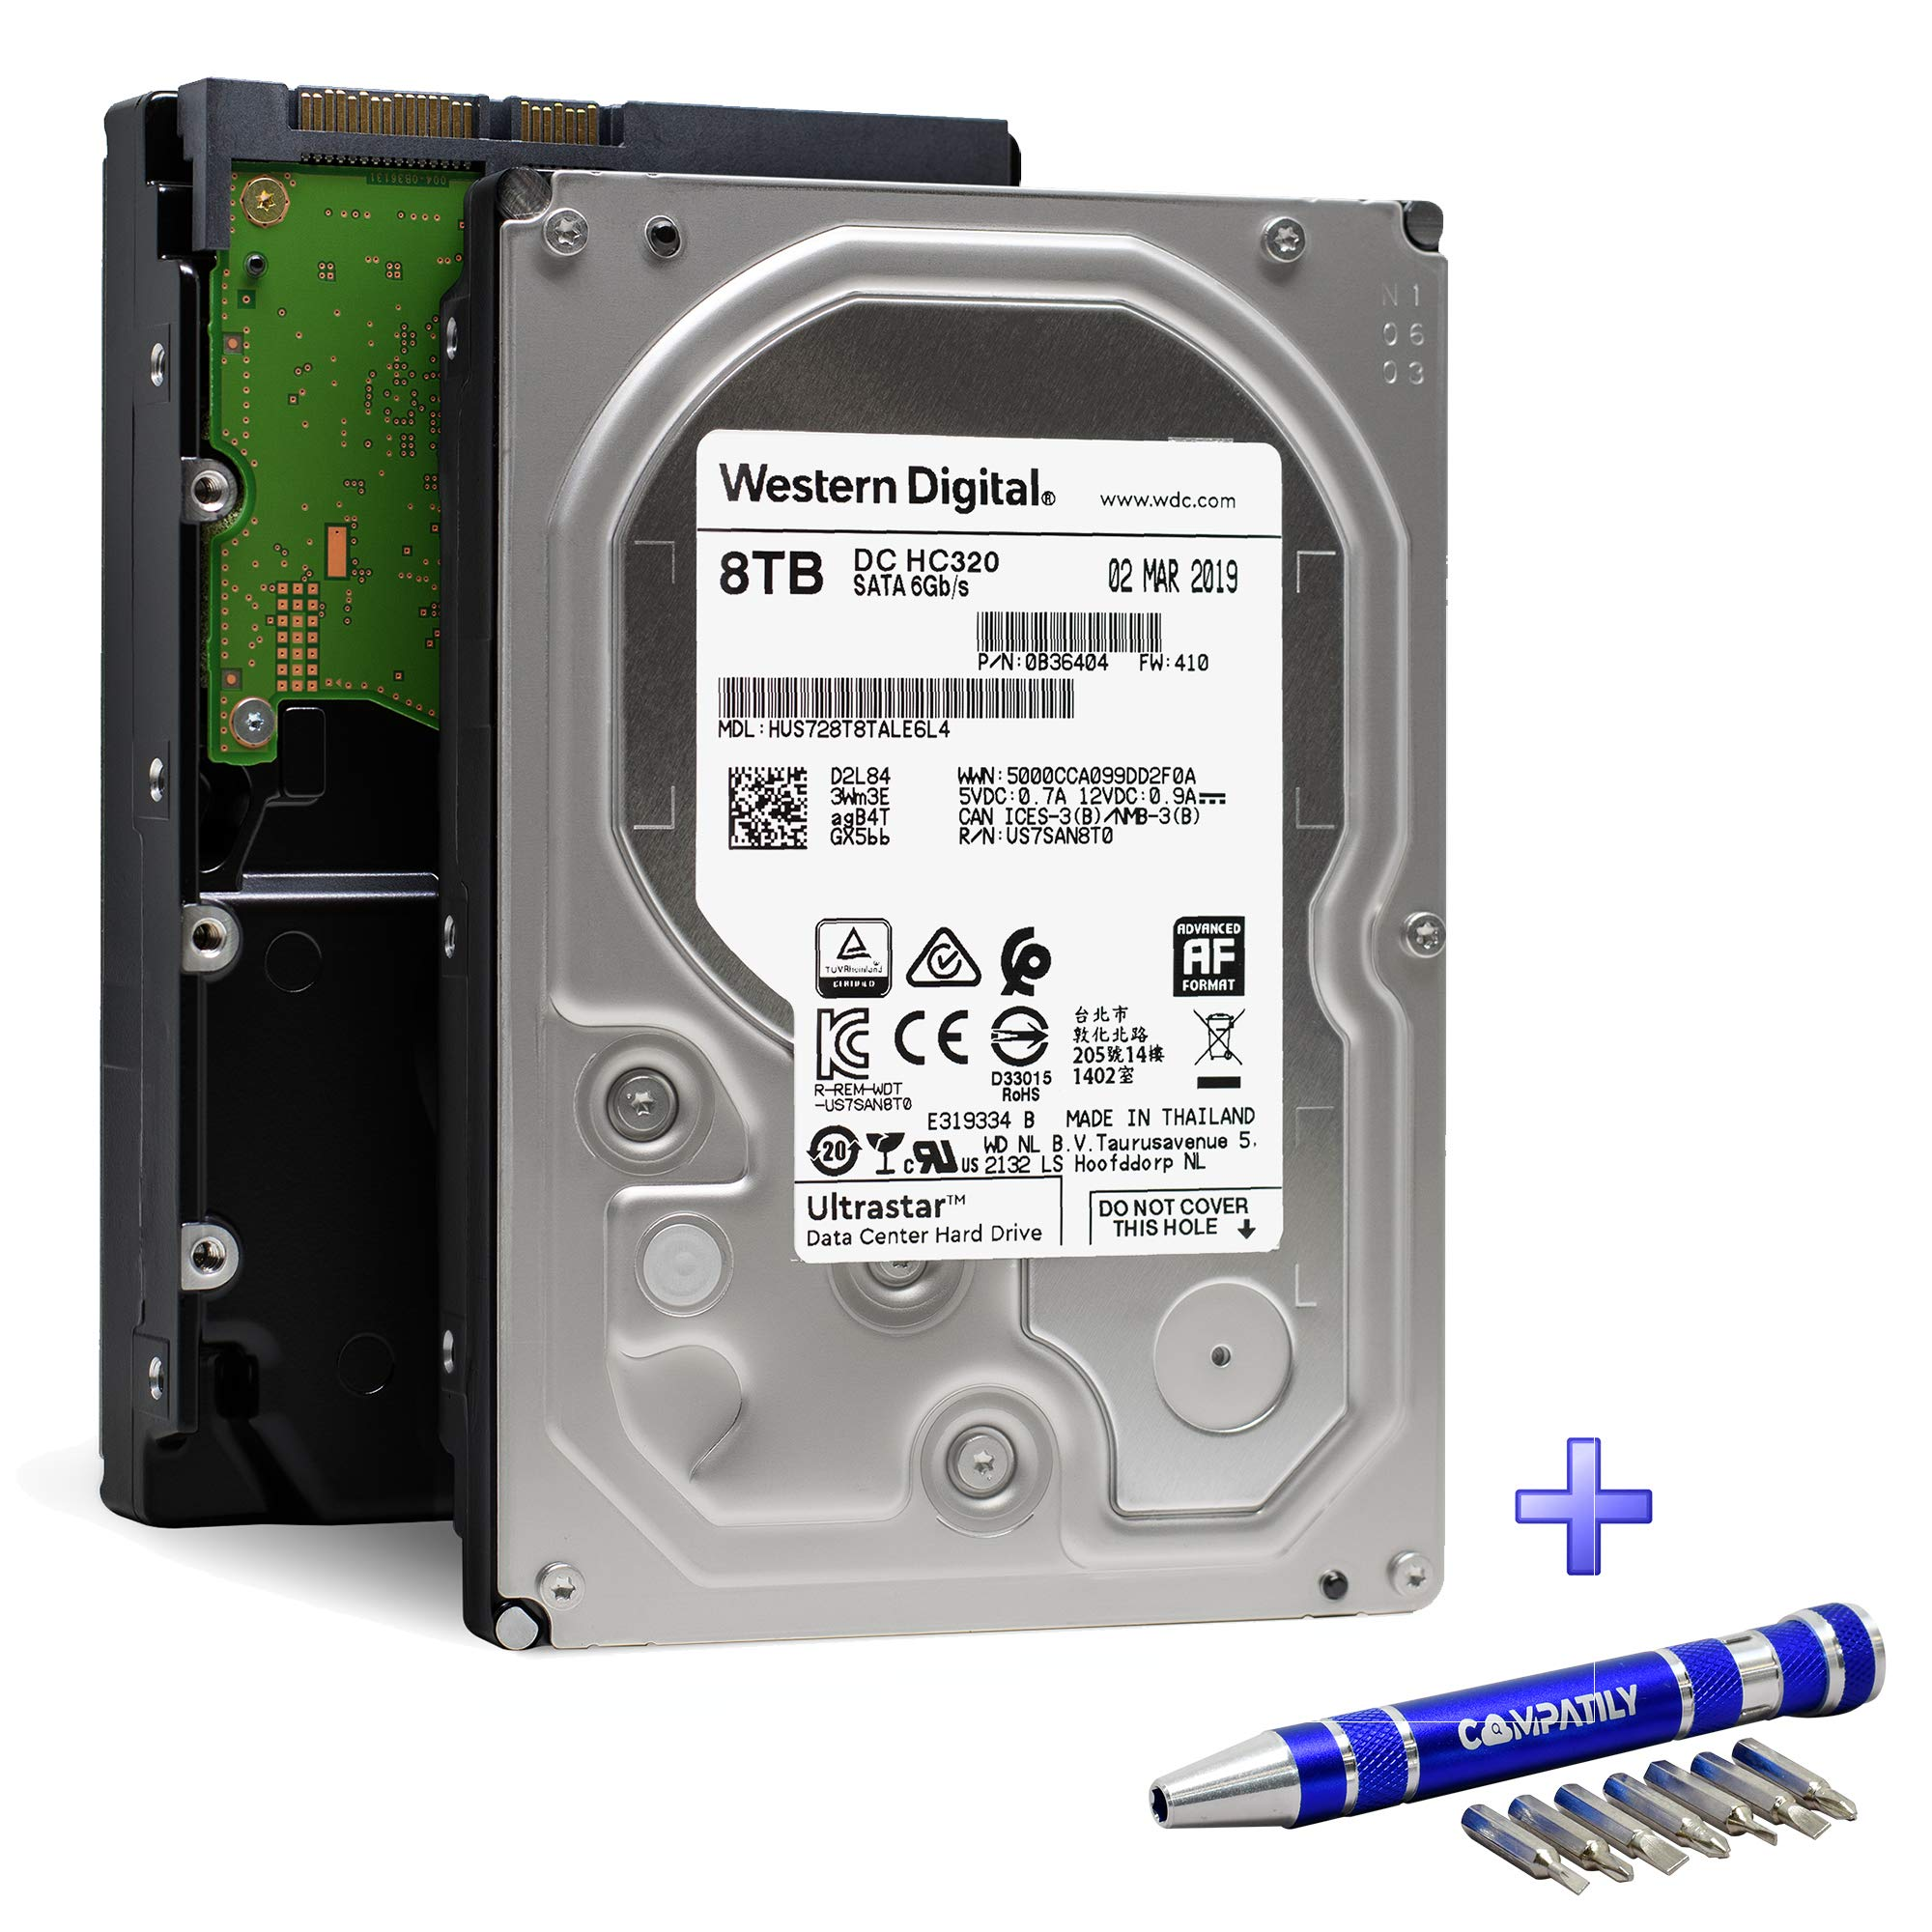 Western Digital Ultrastar DC HC320 HDD 8TB 7200RPM SATA 6Gb/s 256MB Cache 3.5-Inch | HUS728T8TALE6L4 0B36404 | 512e Secure Erase Enterprise Hard Drive Bundle with COMPATILY Aluminum Screw Driver Kit